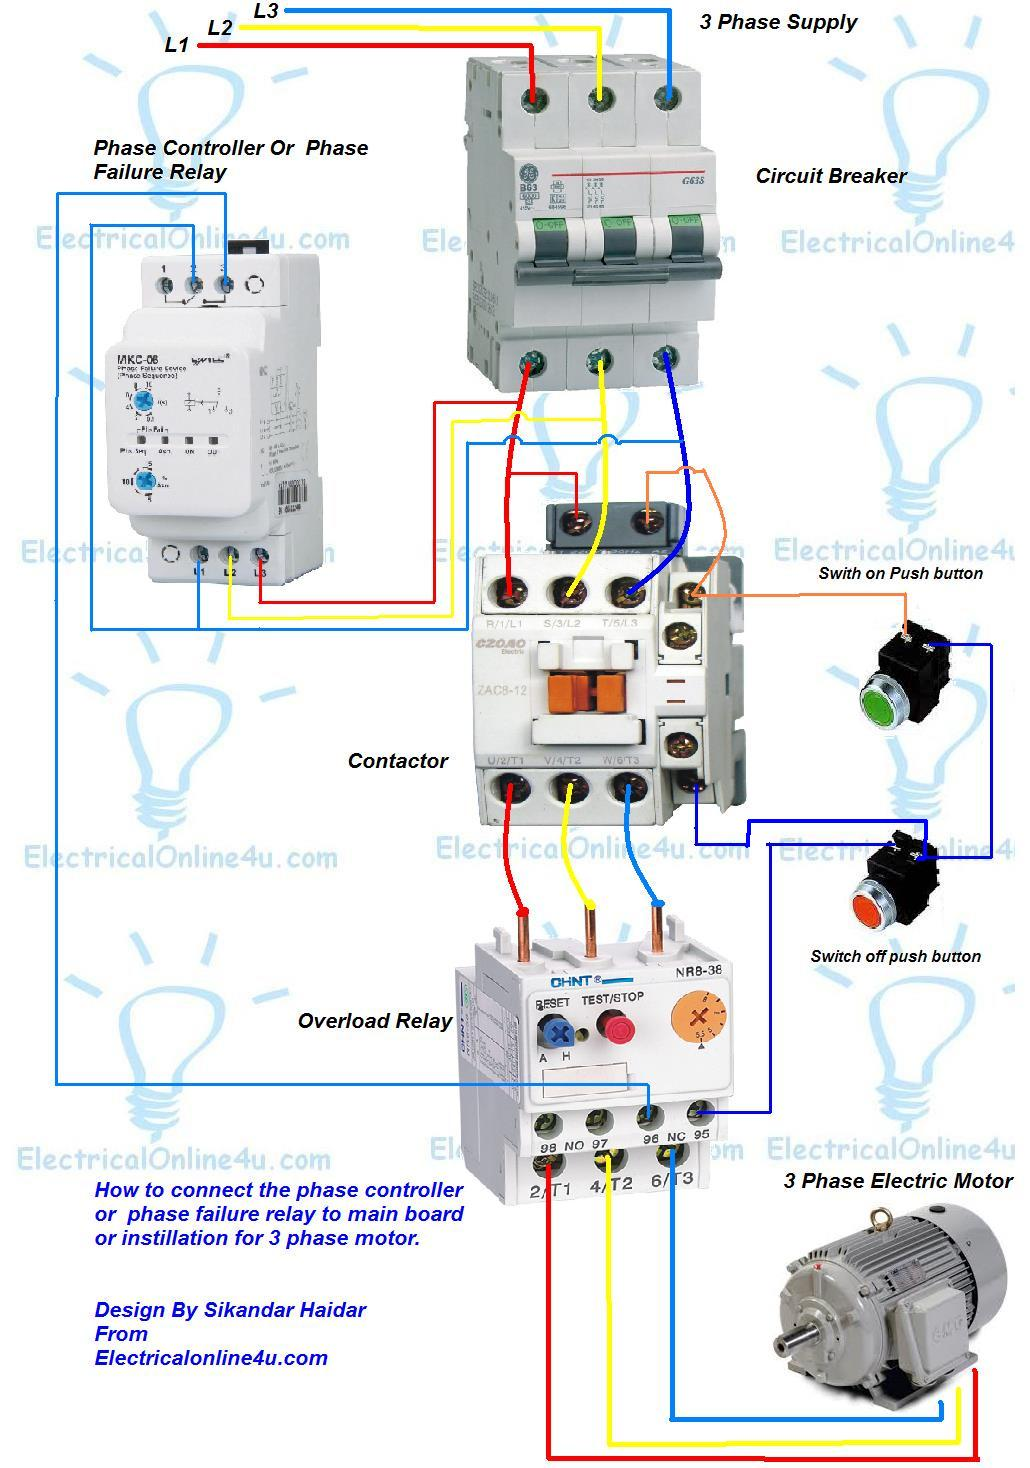 Phase%2Bfailure%2Brelay%2B %2Bphase%2Bcontroller%2Binstilaion%2Bin%2B3%2Bphase%2BMain%2Bboard%2Bor%2Bfor%2B3%2Bphase%2Bmotor phase controller wiring phase failure relay diagram electrical relay wiring diagram at fashall.co